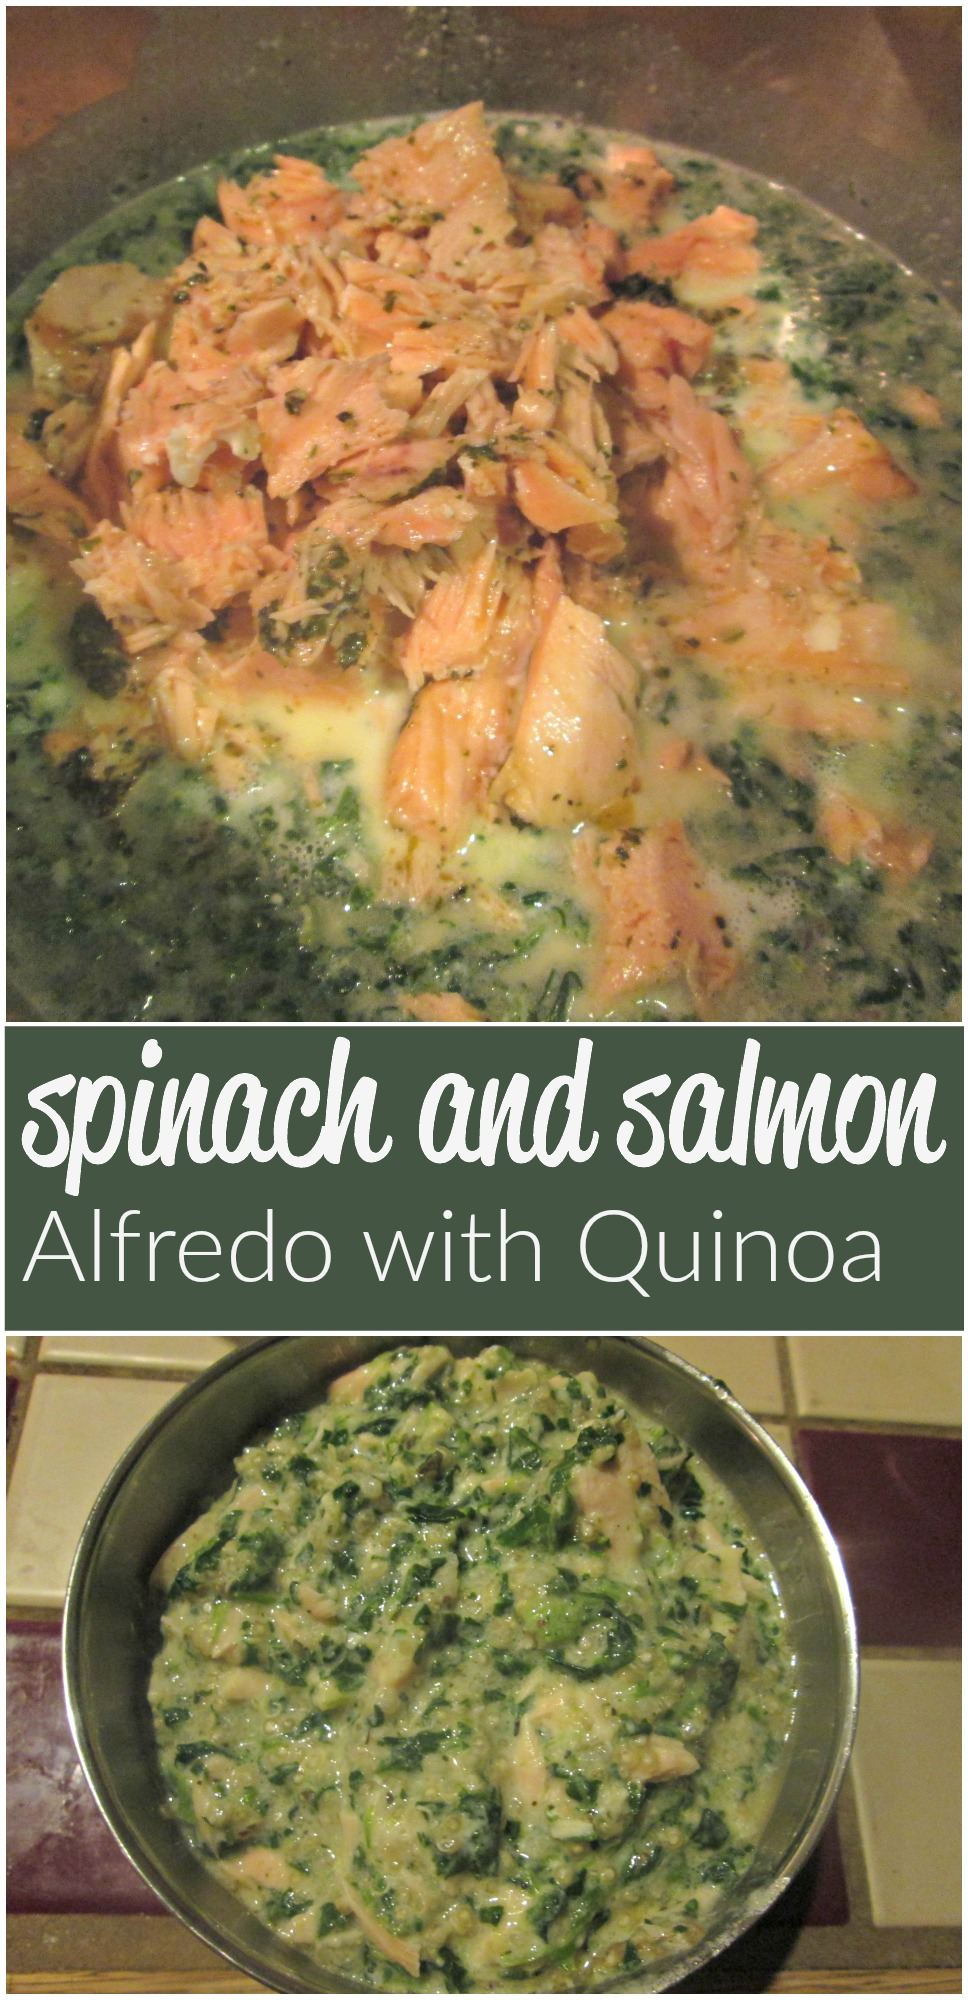 Looking for a fresh and fun meal idea? Try this tasty and delicious spinach and salmon Alfredo featuring @BumblebeeSuperFresh salmon. #BumbleBeeSuperFresh #Seafoodie